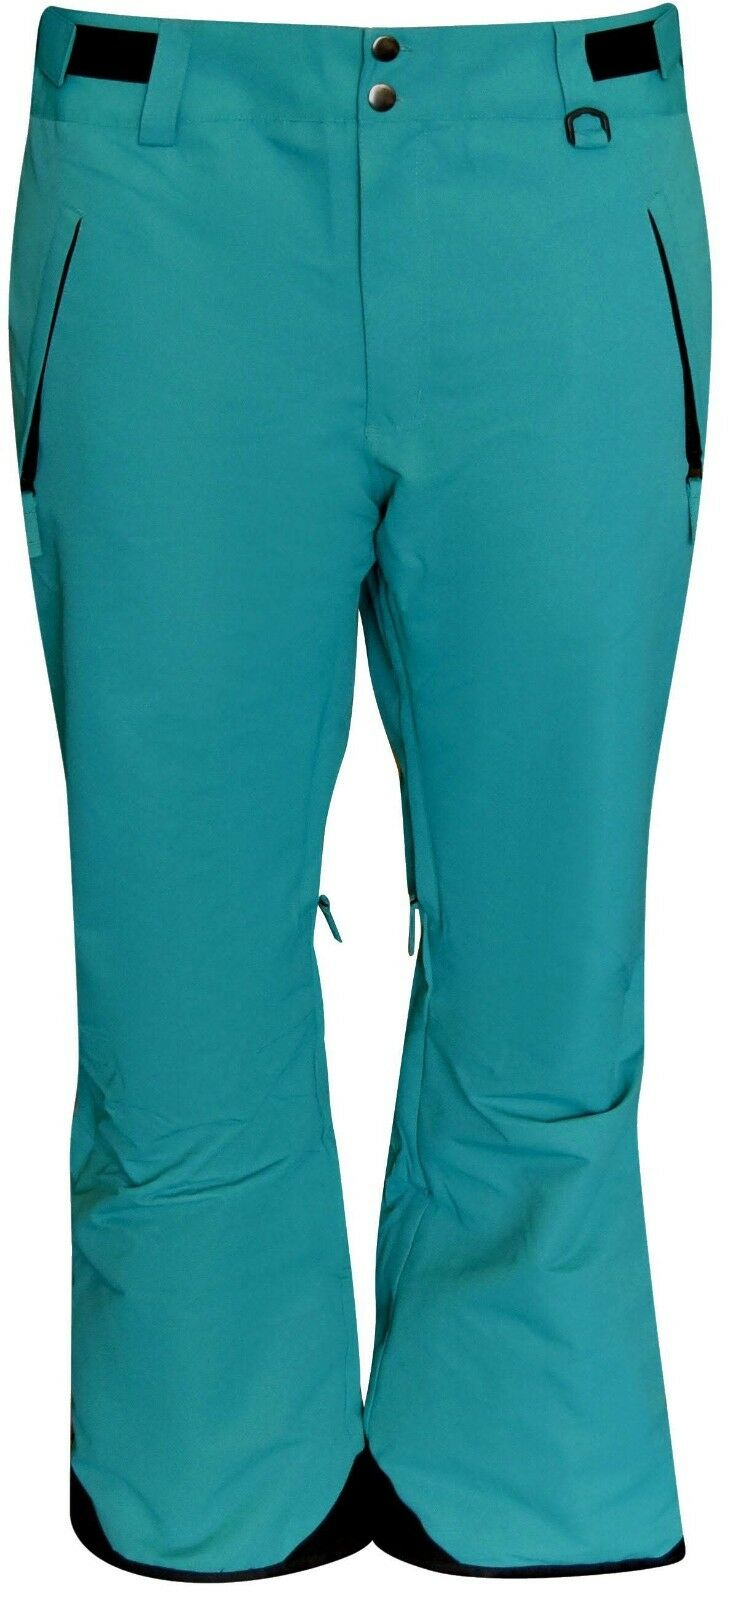 New Snow Country Outerwear Pants Damenschuhe Ski Pants Outerwear Insulated S M L XL Teal 125 d924a0